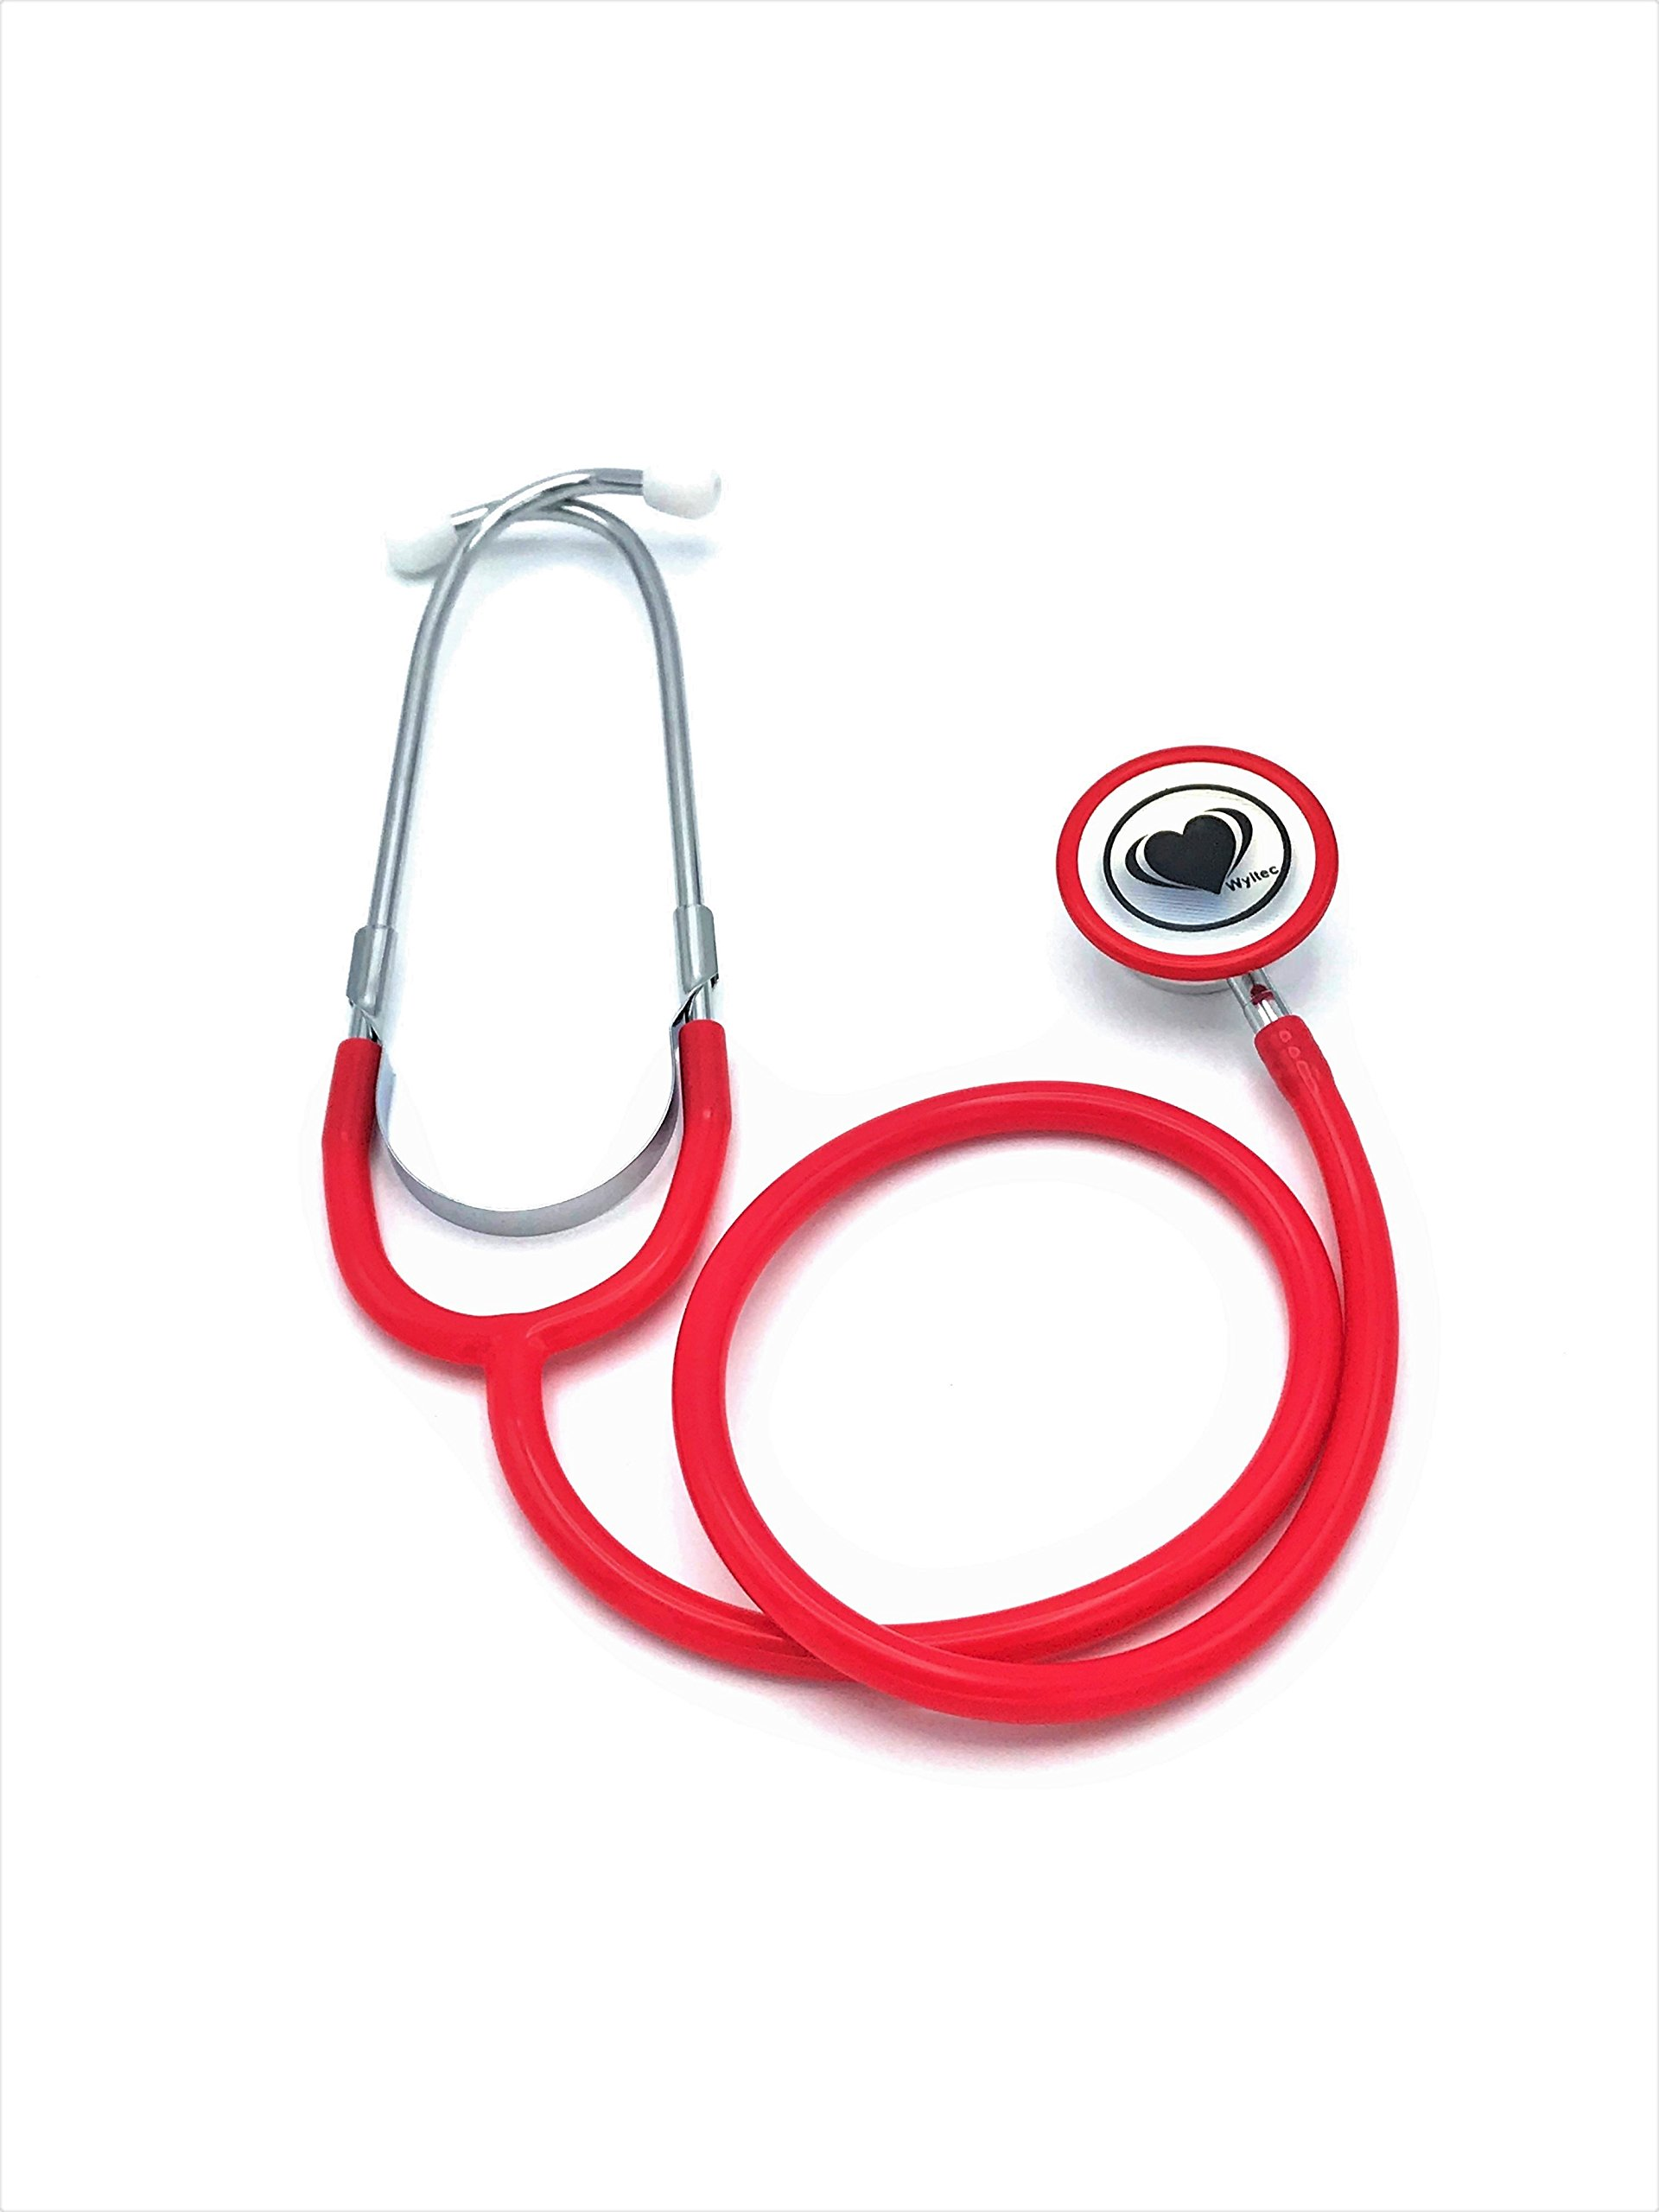 Wyltec Acoustica Deluxe Lightweight Dual Head Stethoscope - Latex Free - External Spring Binaural, Rimmed Non-chill Rings, and Quality Diaphragm - (Red)